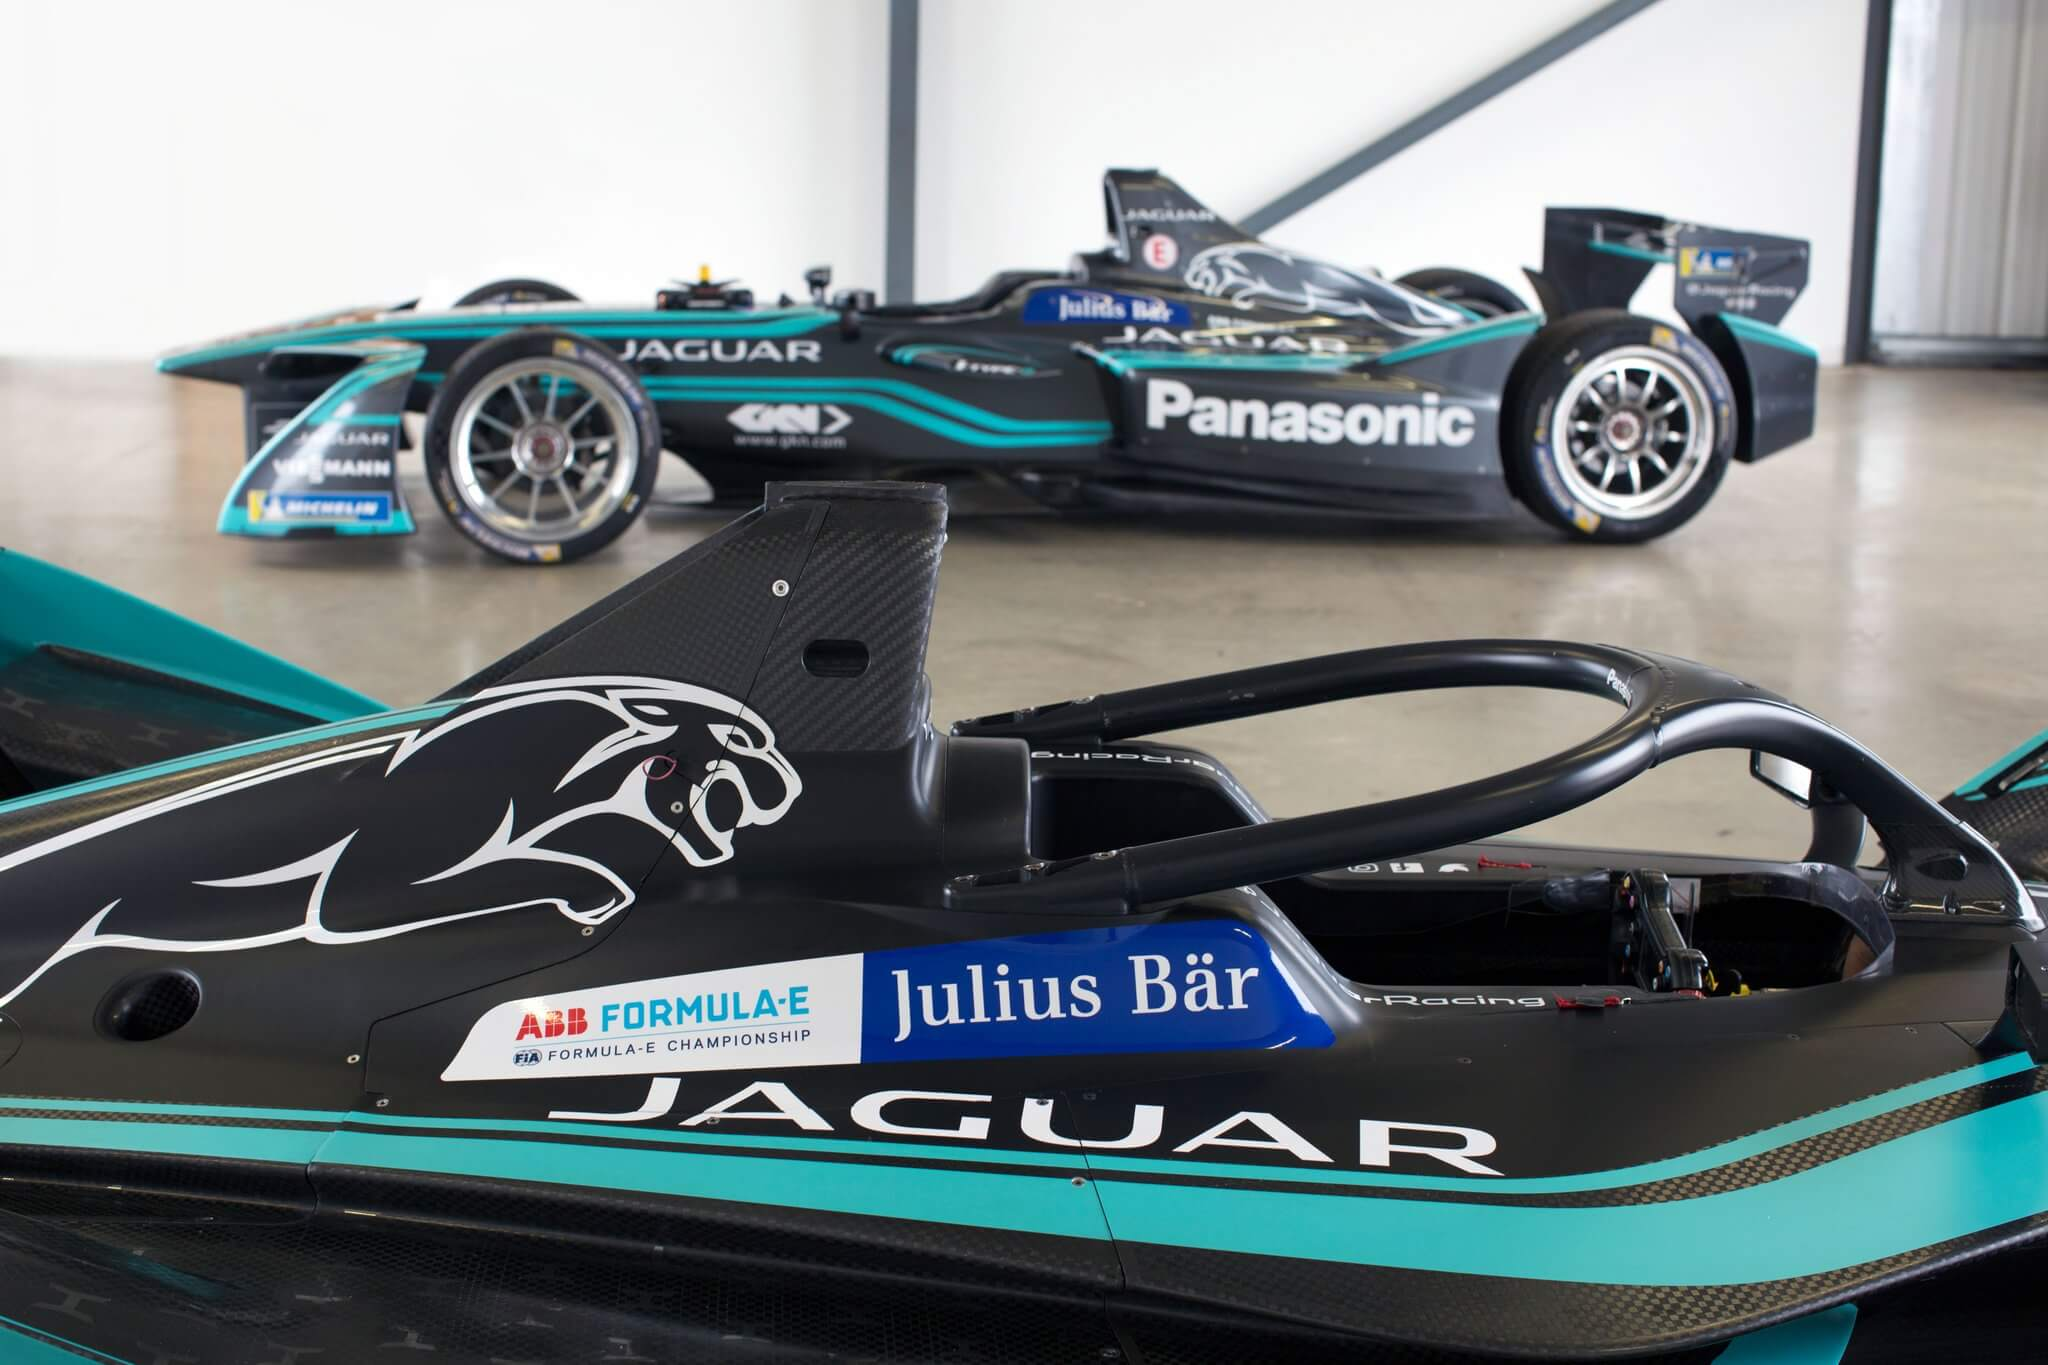 Jaguar-Formula-E-Cars-Gen1-and-Gen2